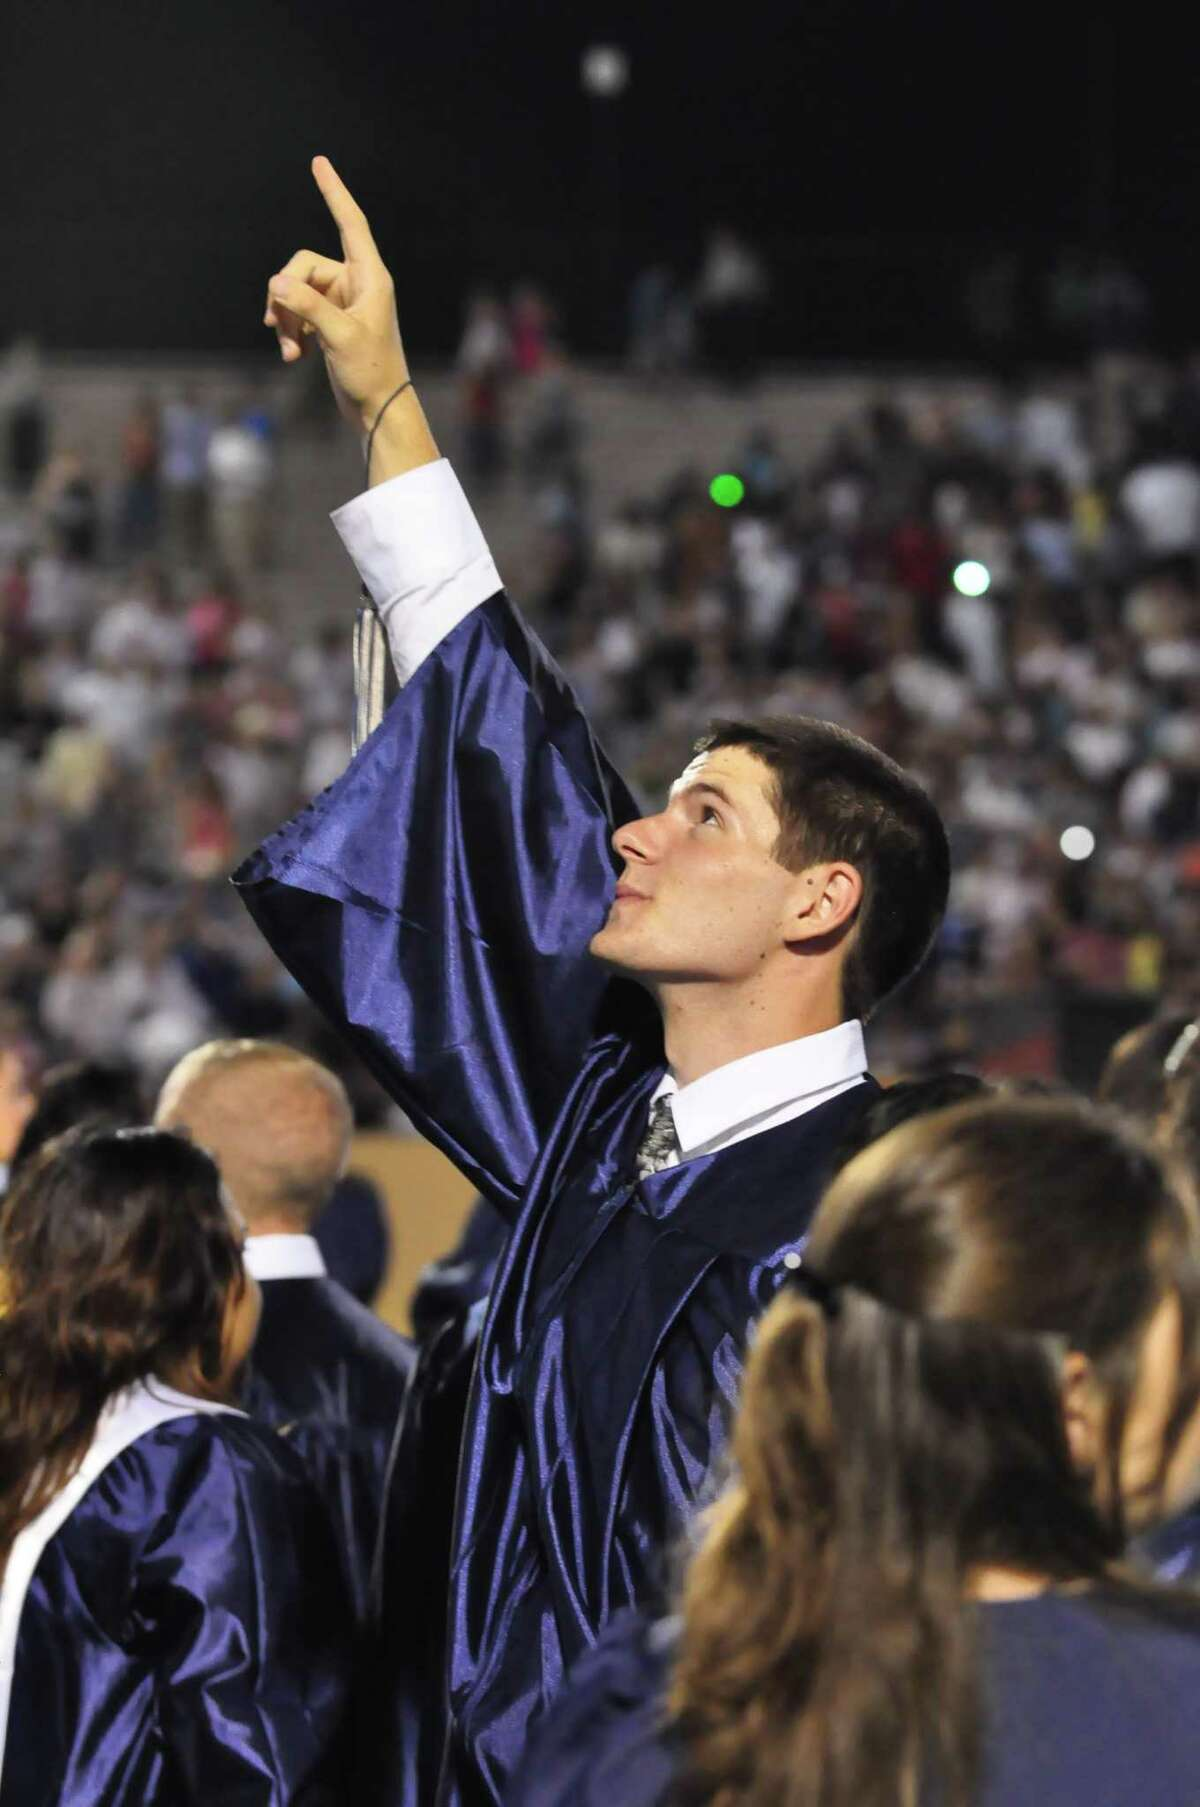 The joy of experiencing high school graduation ceremonies, such as Manvel High School grad Justin Cook displayed in 2009, is planned for this year's Alvin ISD graduating seniors despite the novel coronavirus pandemic. Virtual grad ceremonies are set for May but in-person vents are planned for July.